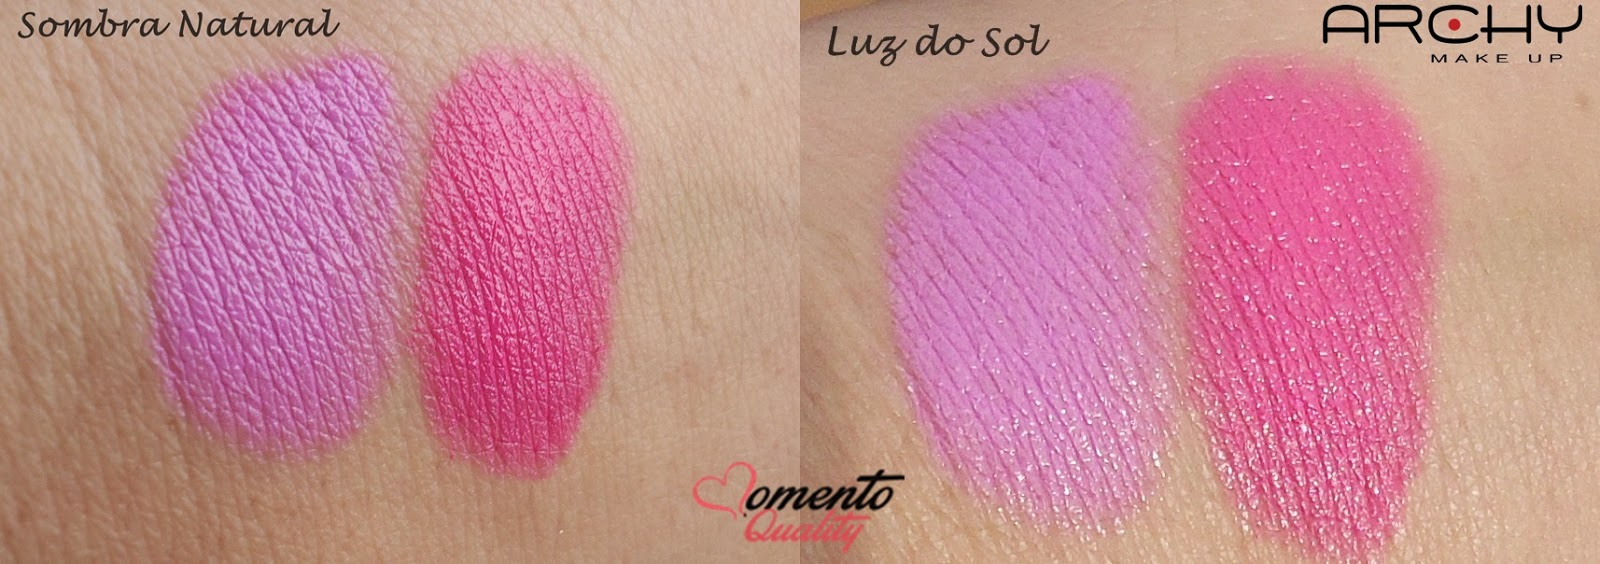 Batom Archy Make Up Swatches Sombra Momento Quality